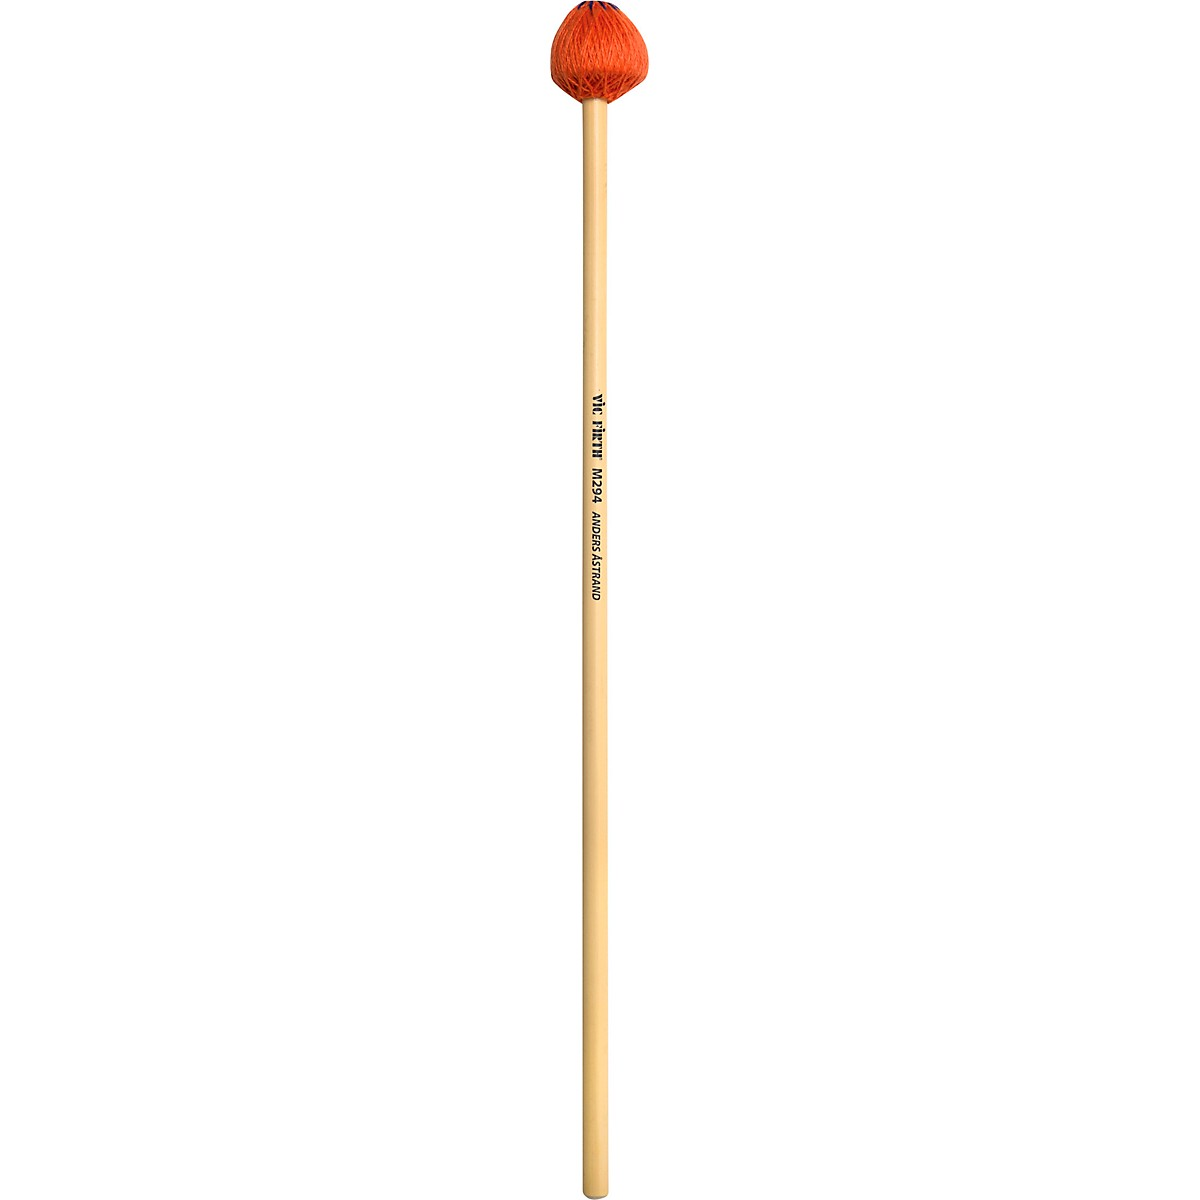 Vic Firth Anders Astrand Birch Handle Xylophone Mallet